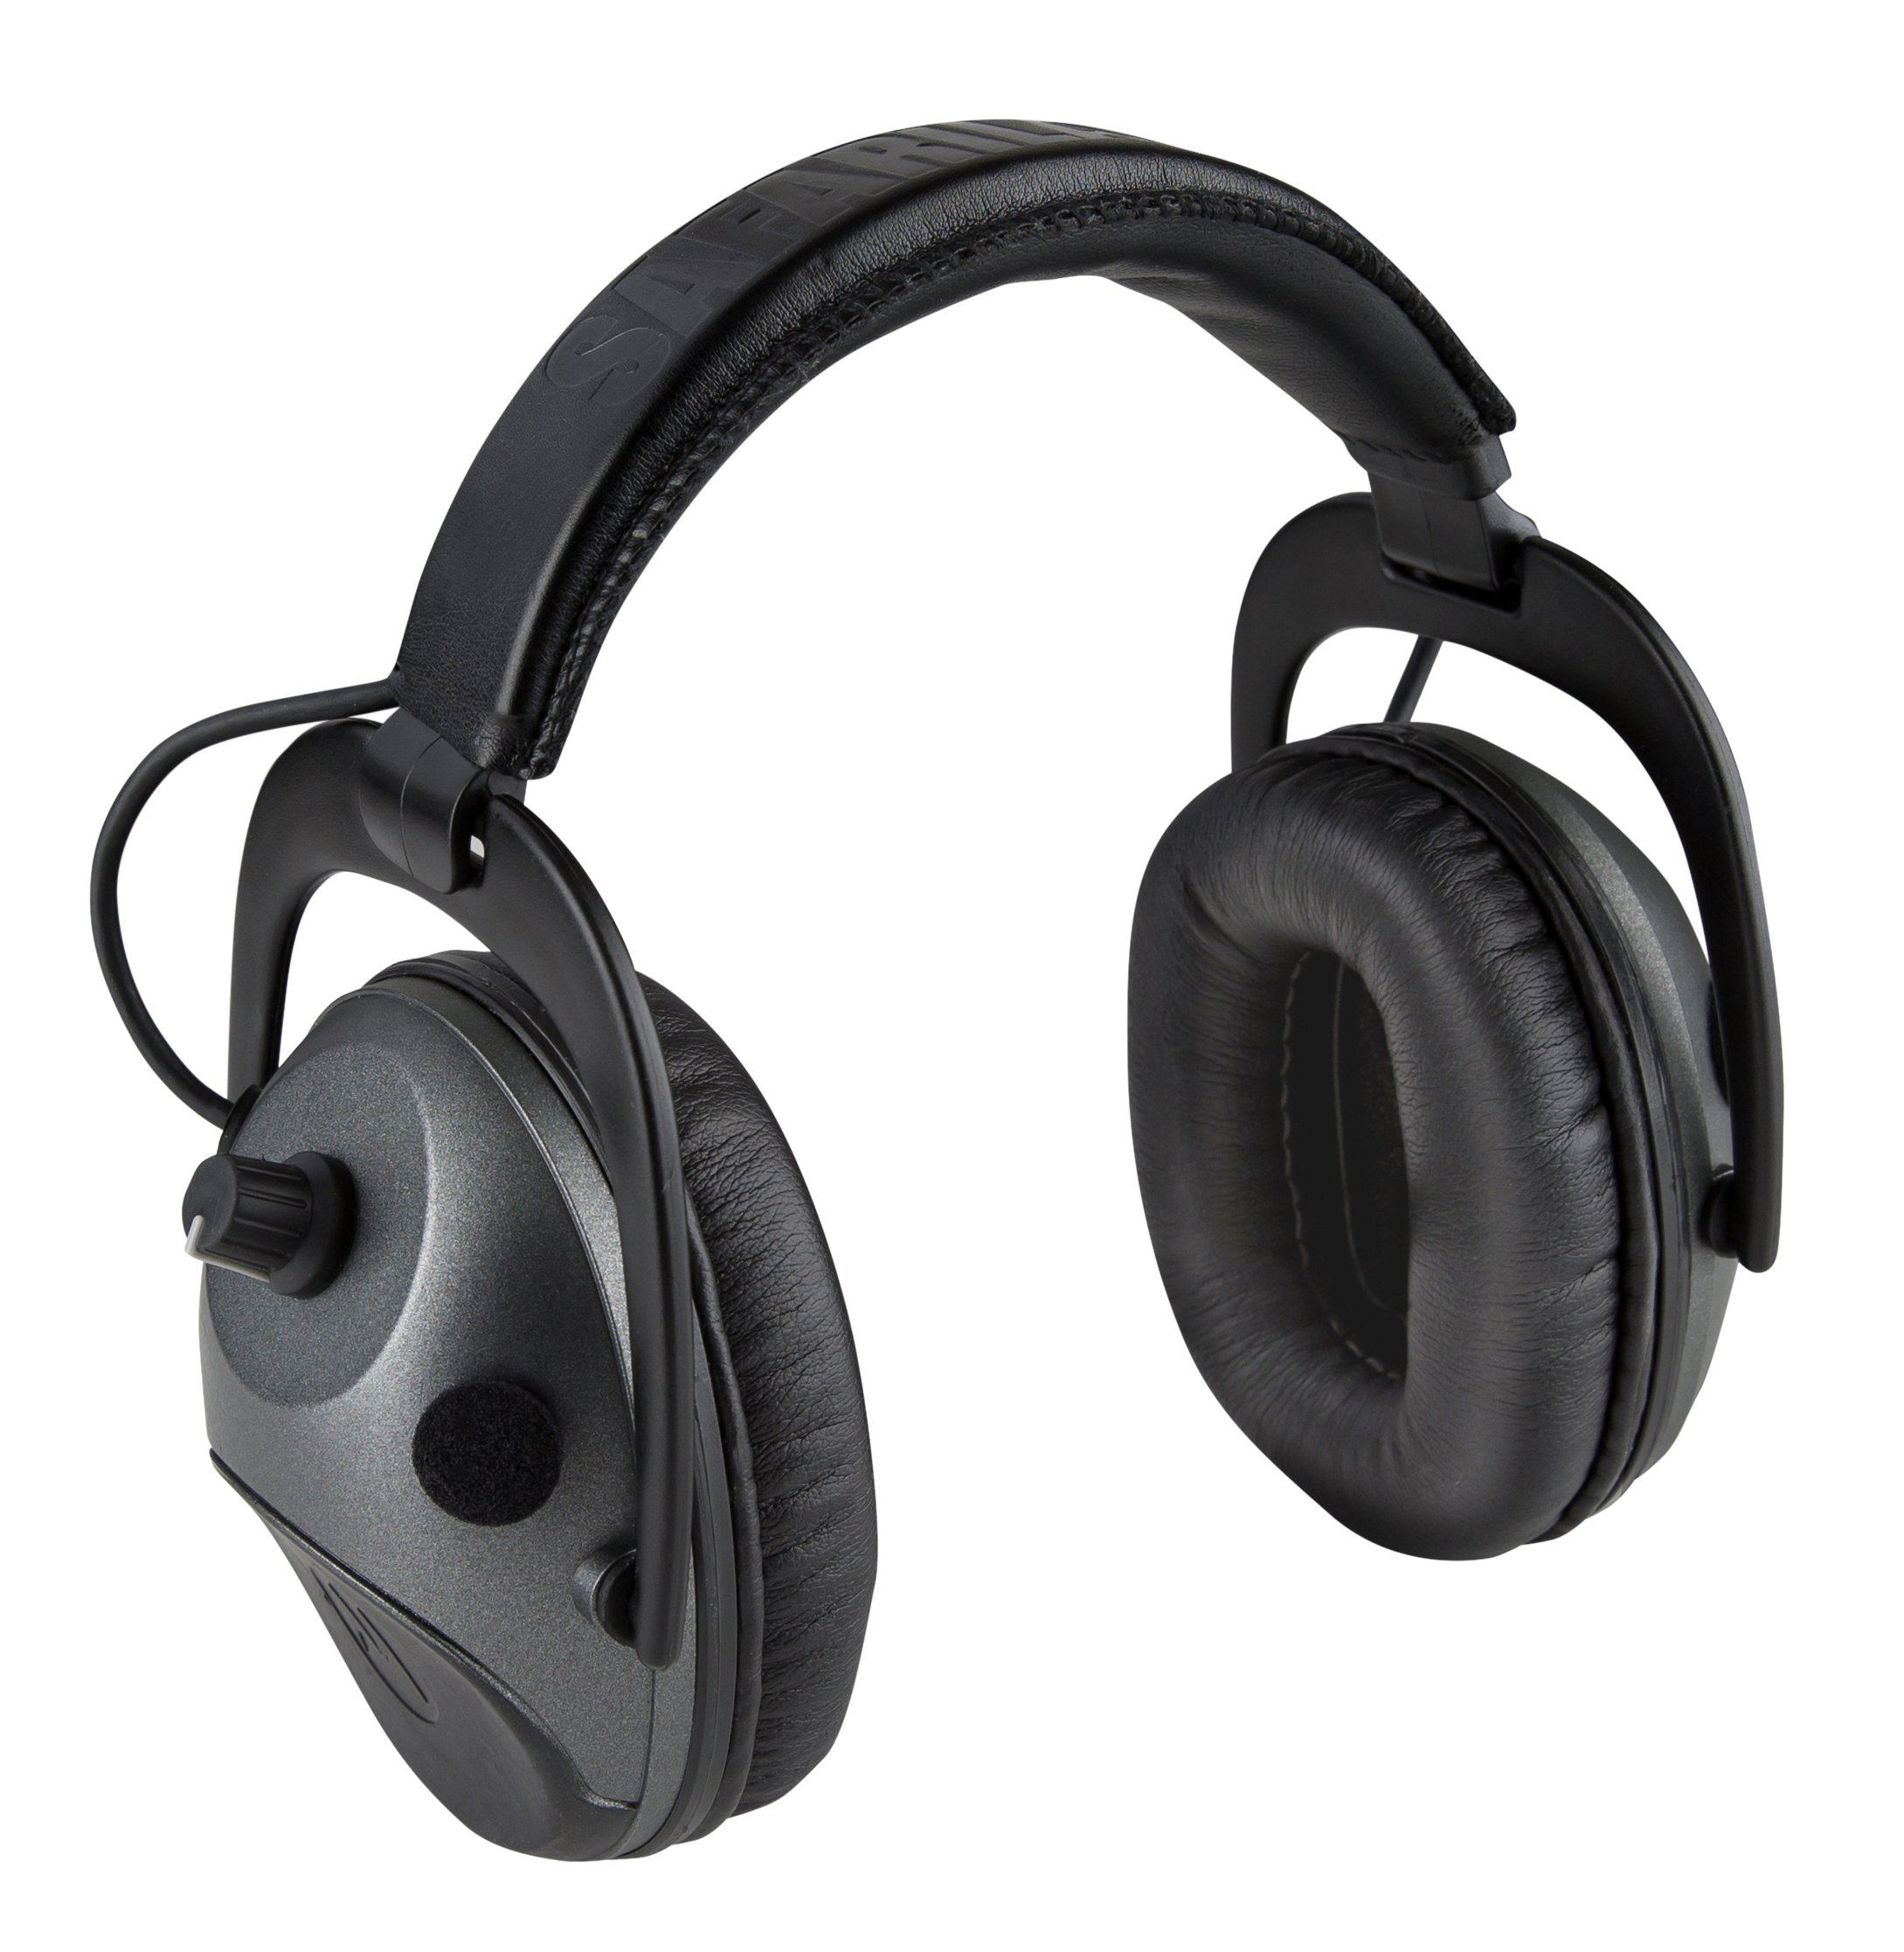 Safariland Electronic Hearing Protection, Dark Grey, One Size by Safariland